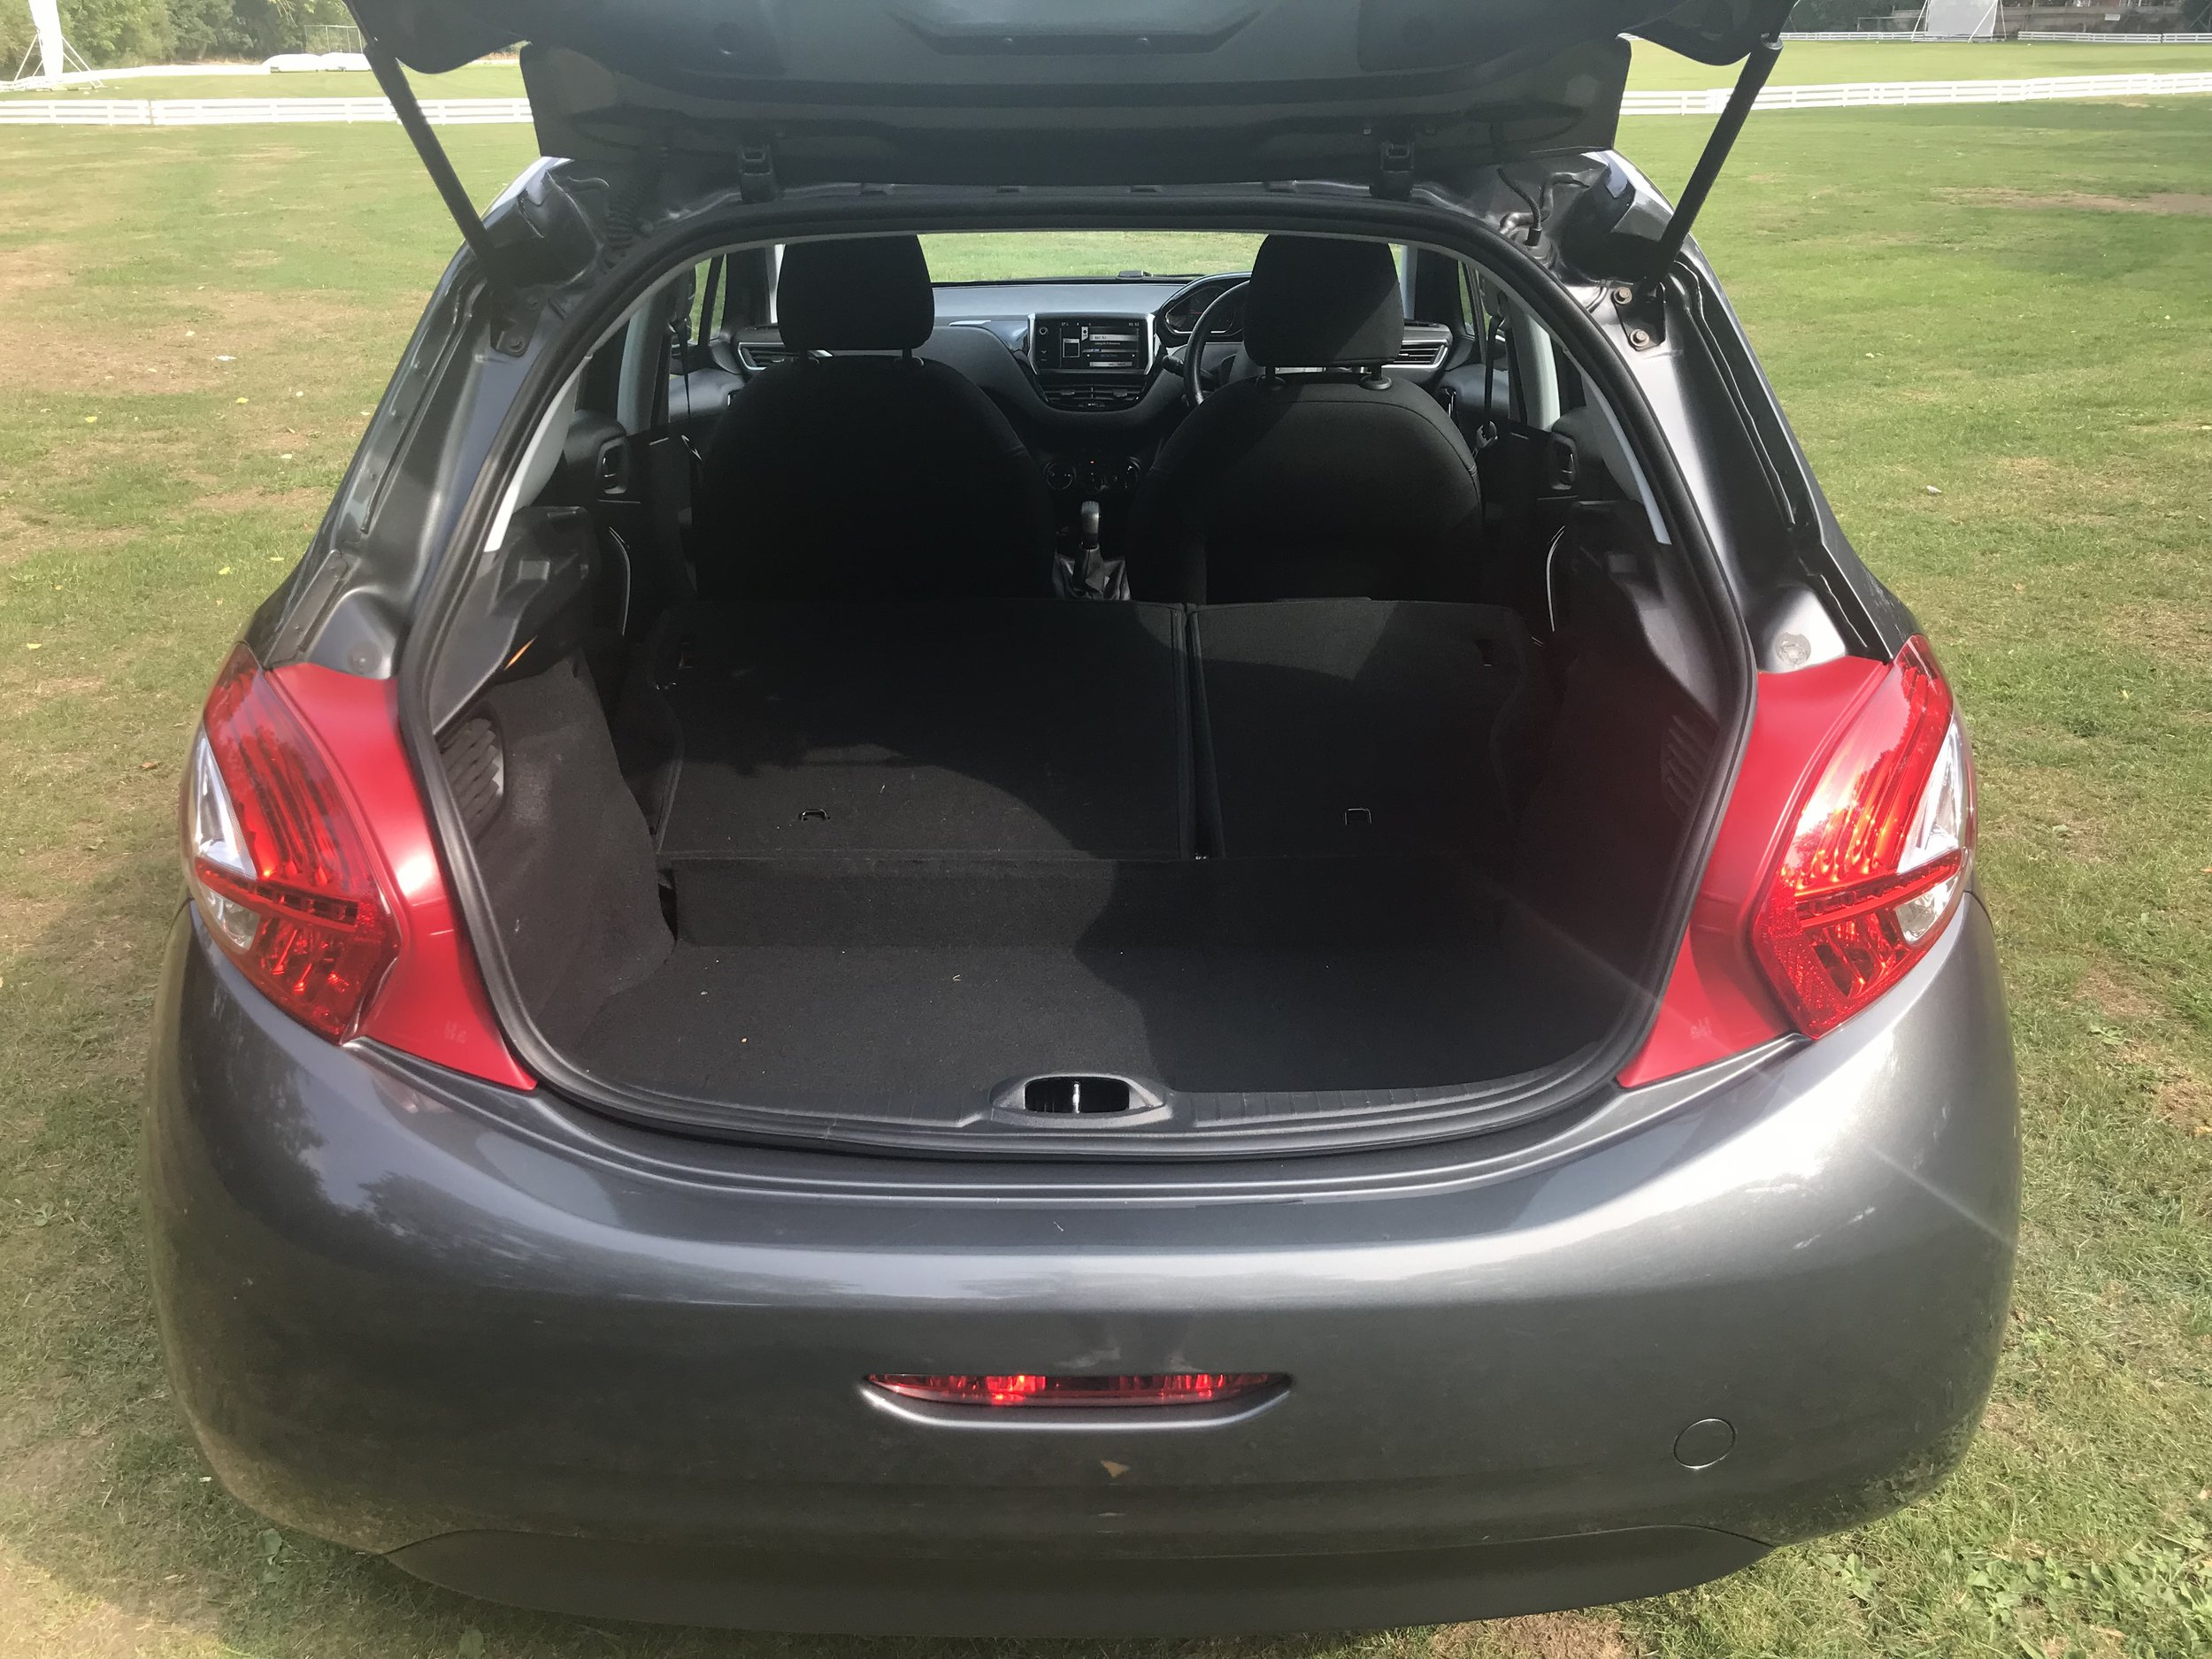 peugeot-208-vti-active-forsale-regalmotion-regalpreowned-usedcar-redditch-bromsgrove-worcestershire-6479-18.jpeg